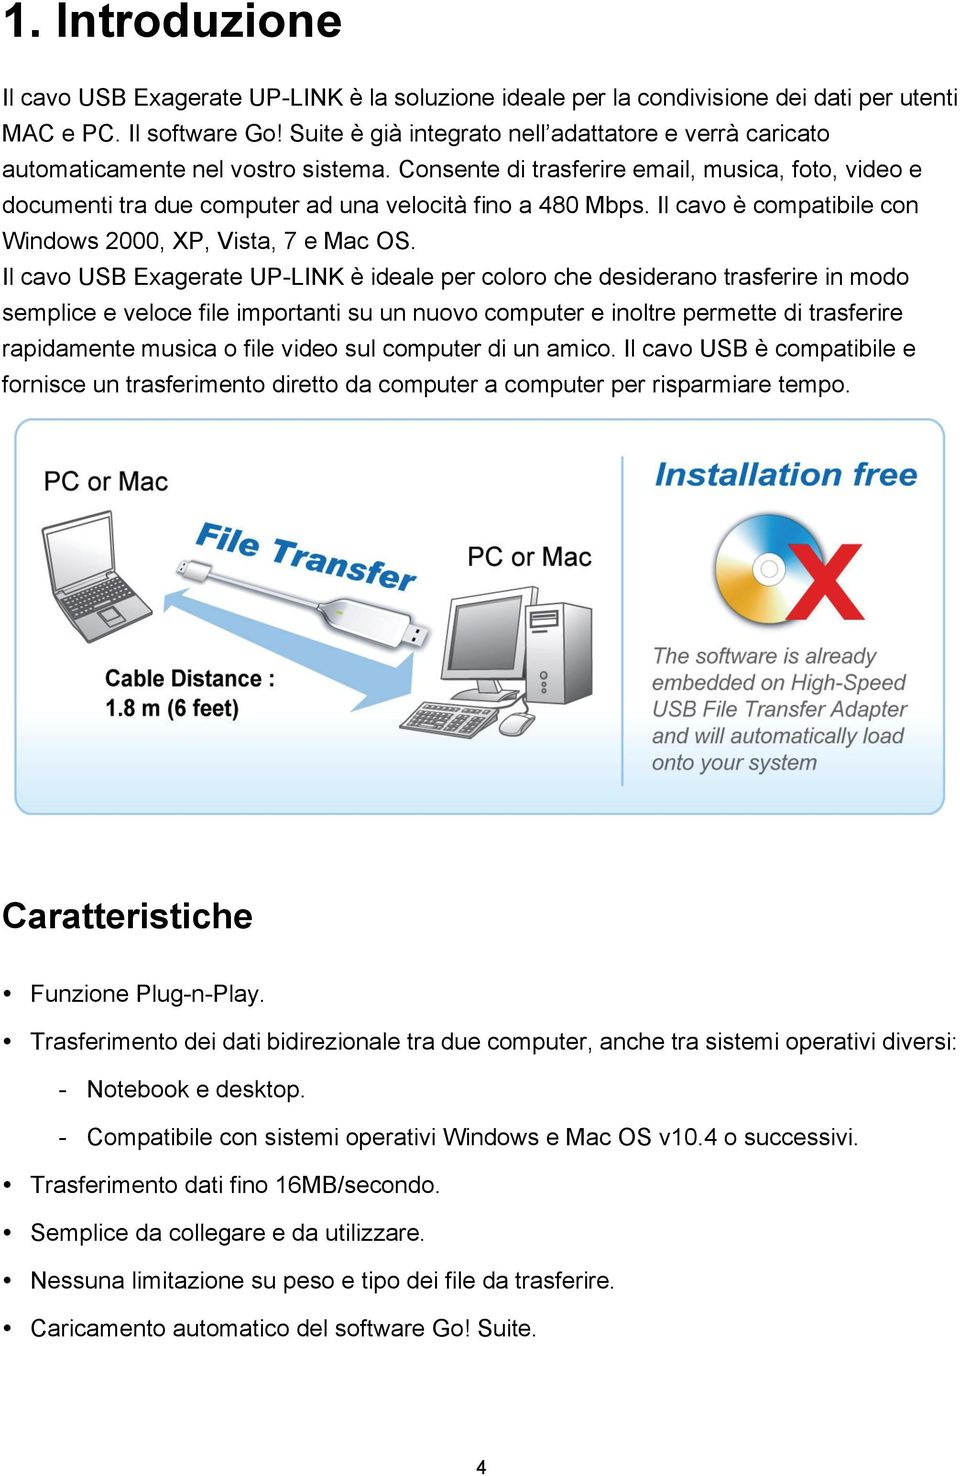 Consente di trasferire email, musica, foto, video e documenti tra due computer ad una velocità fino a 480 Mbps. Il cavo è compatibile con Windows 2000, XP, Vista, 7 e Mac OS.